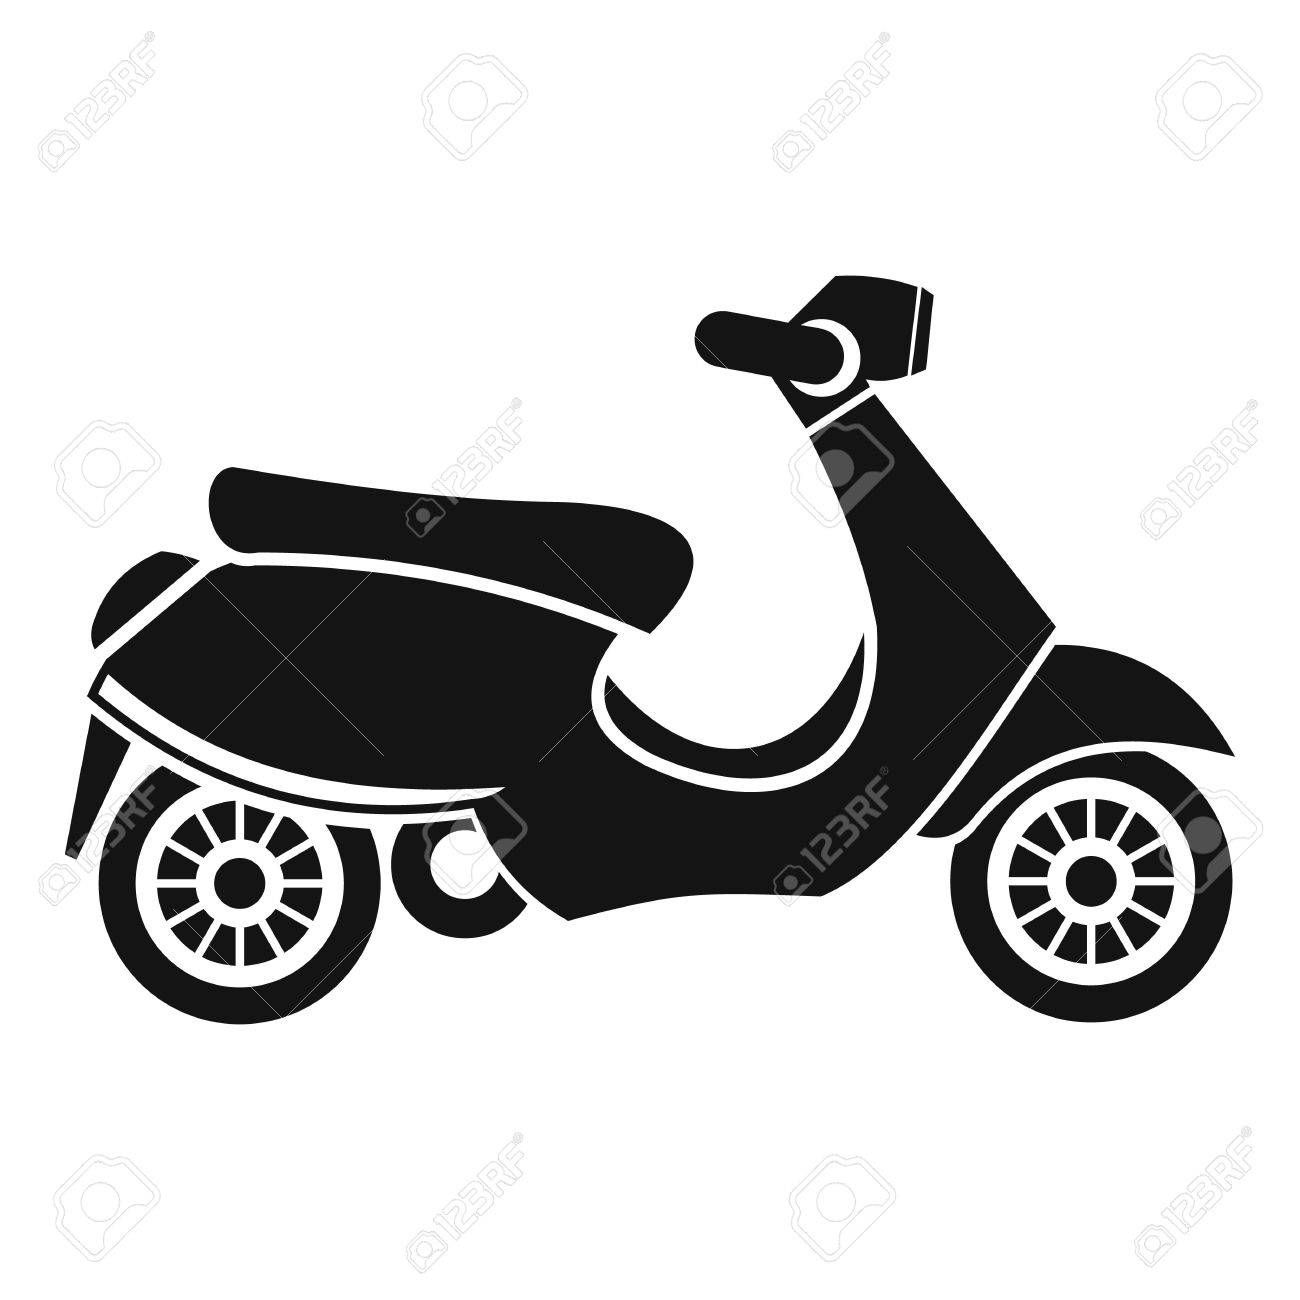 vespa scooter icon simple illustration of scooter vector icon royalty free cliparts vectors and stock illustration image 64175386 vespa scooter icon simple illustration of scooter vector icon